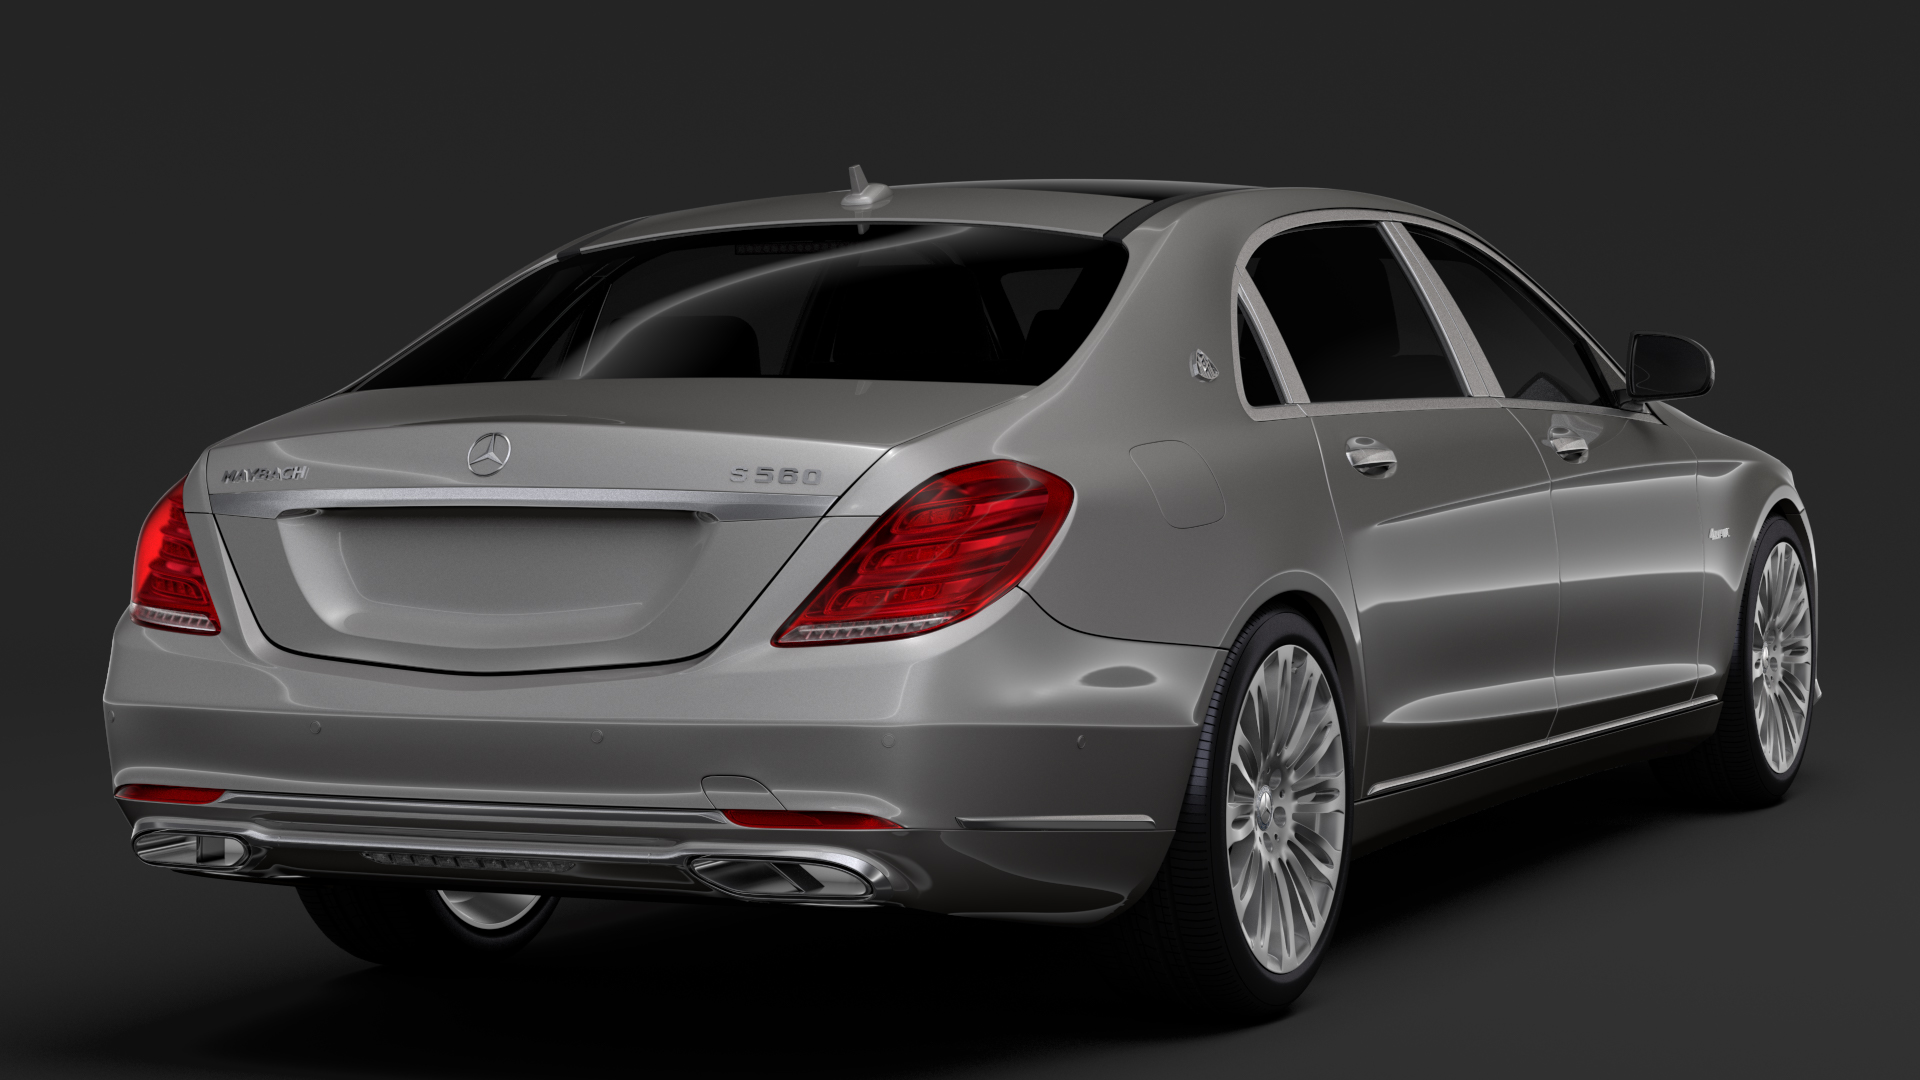 mercedes maybach s 560 4matic x222 2018 3d model 3ds max fbx c4d lwo ma mb hrc xsi obj 284433